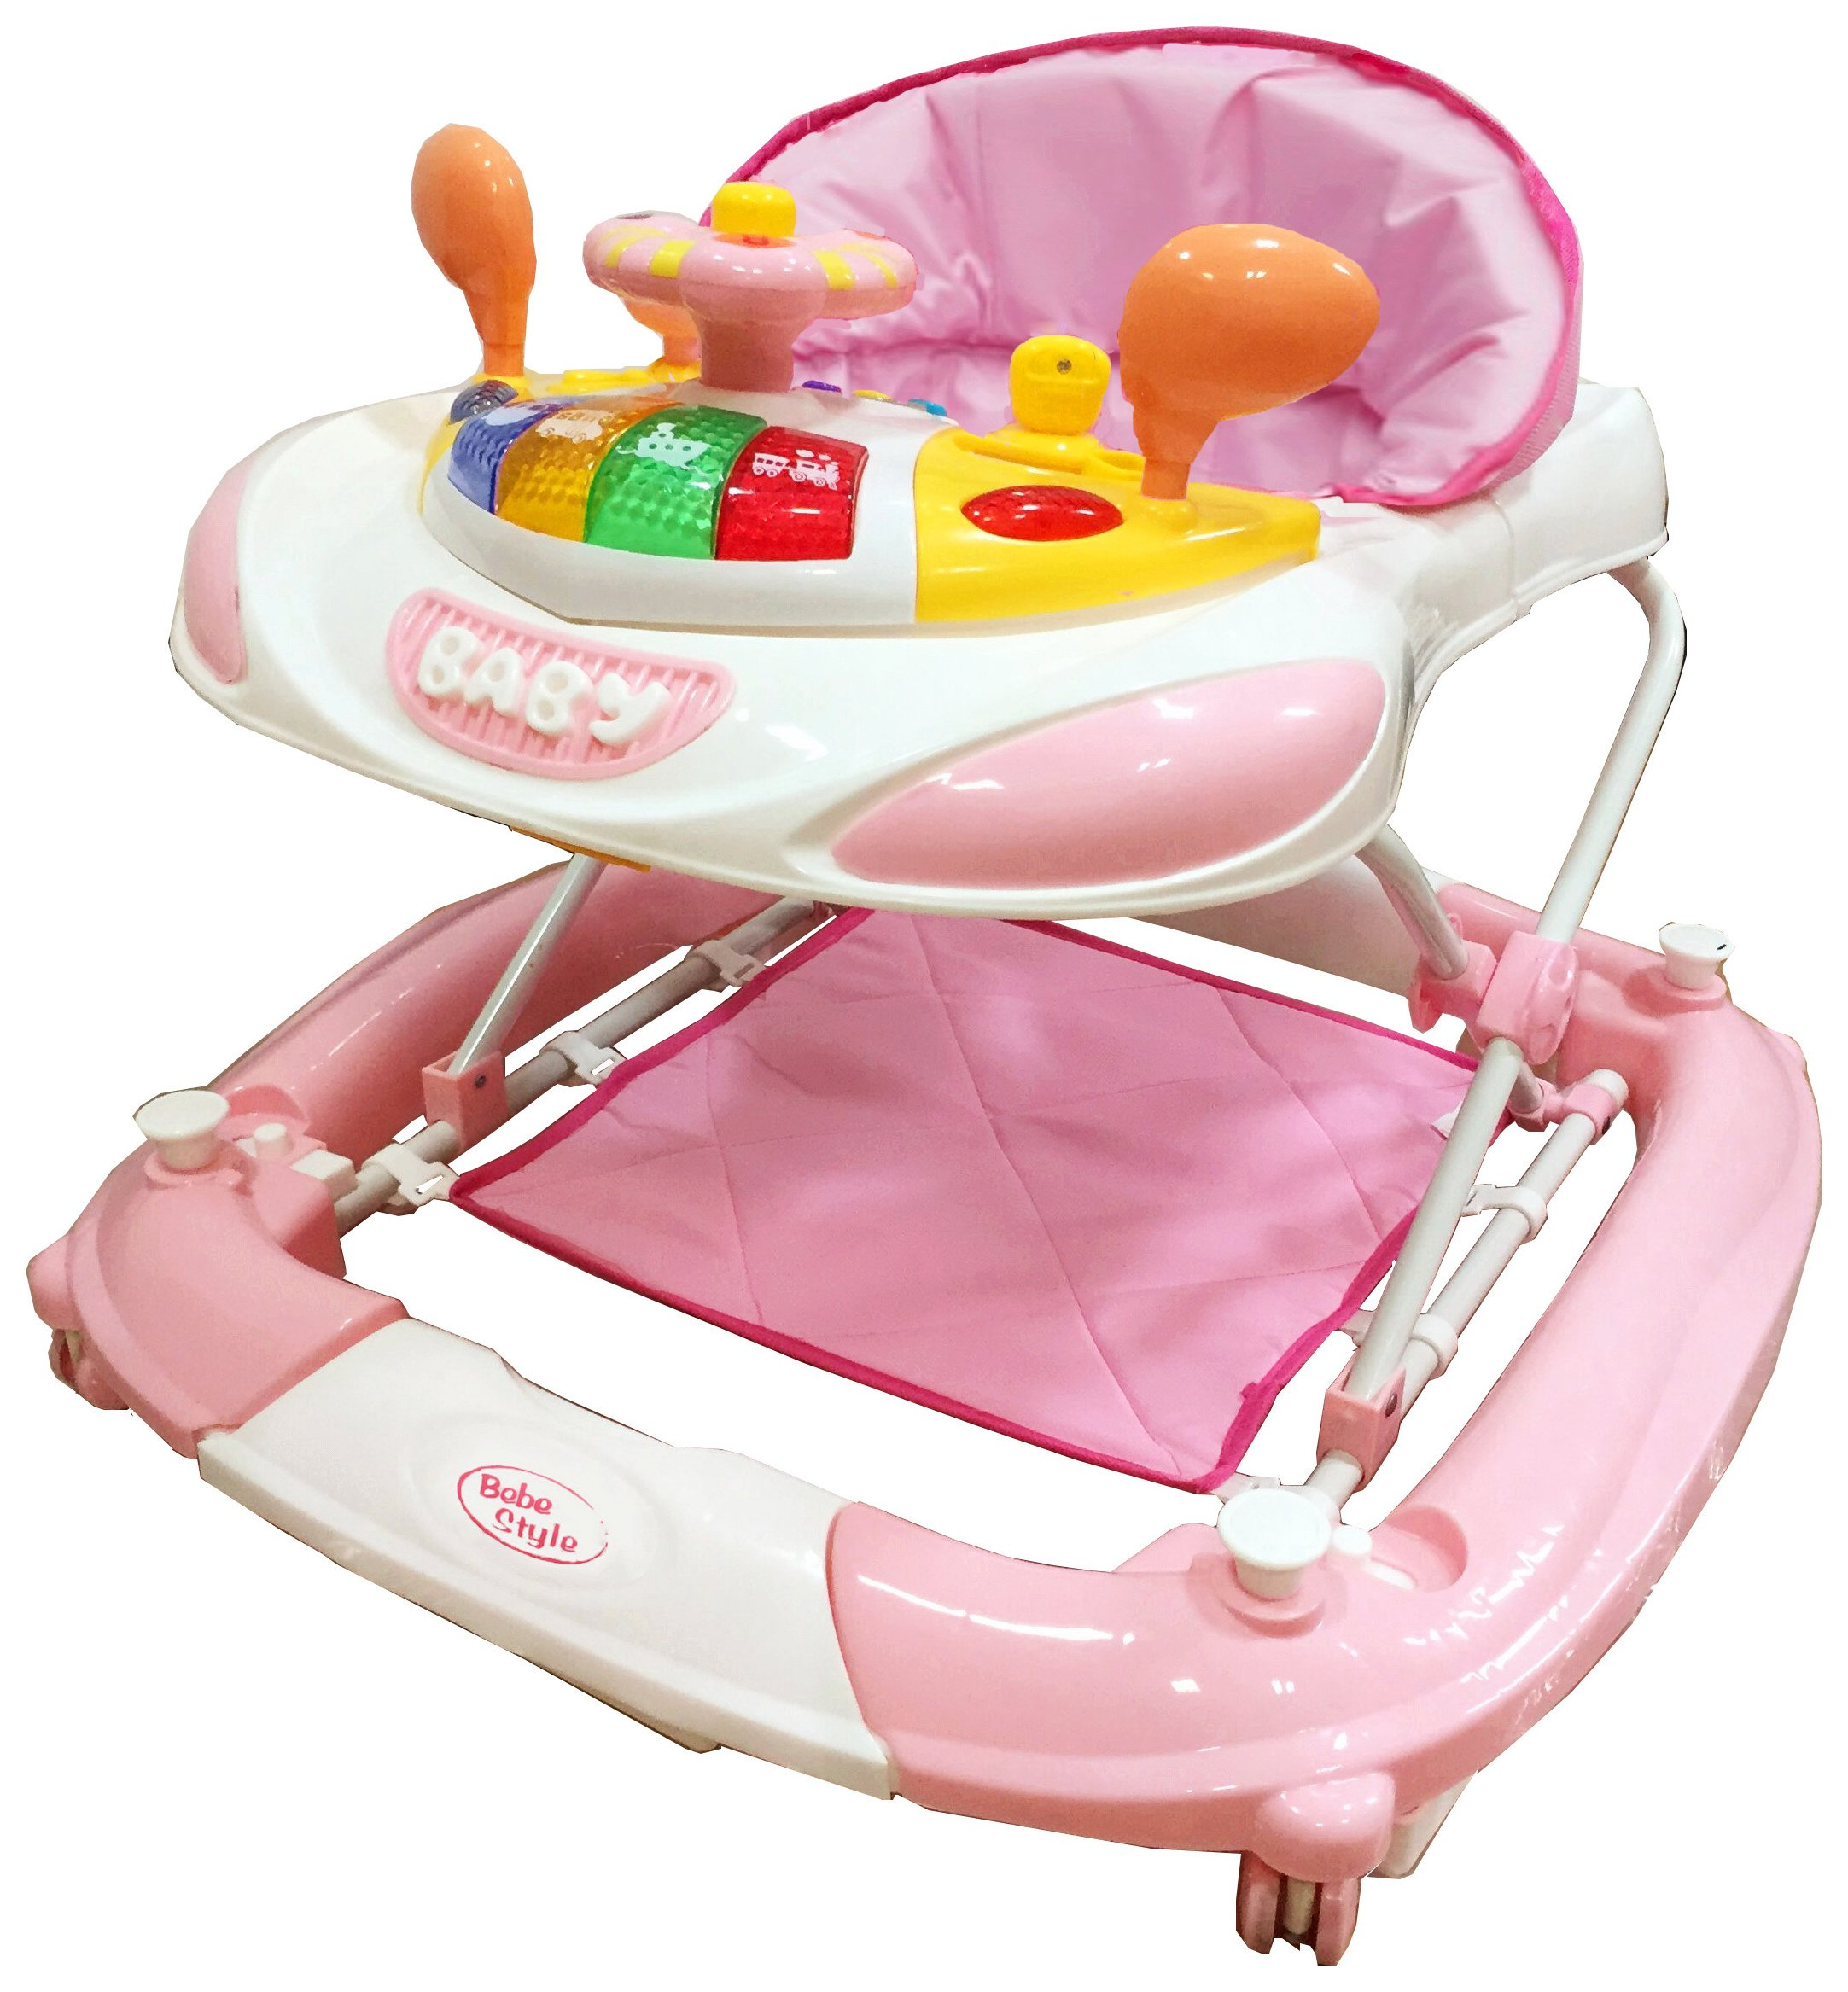 Image of Bebe Style F1 Racing Car Walker n Rocker - Pink.